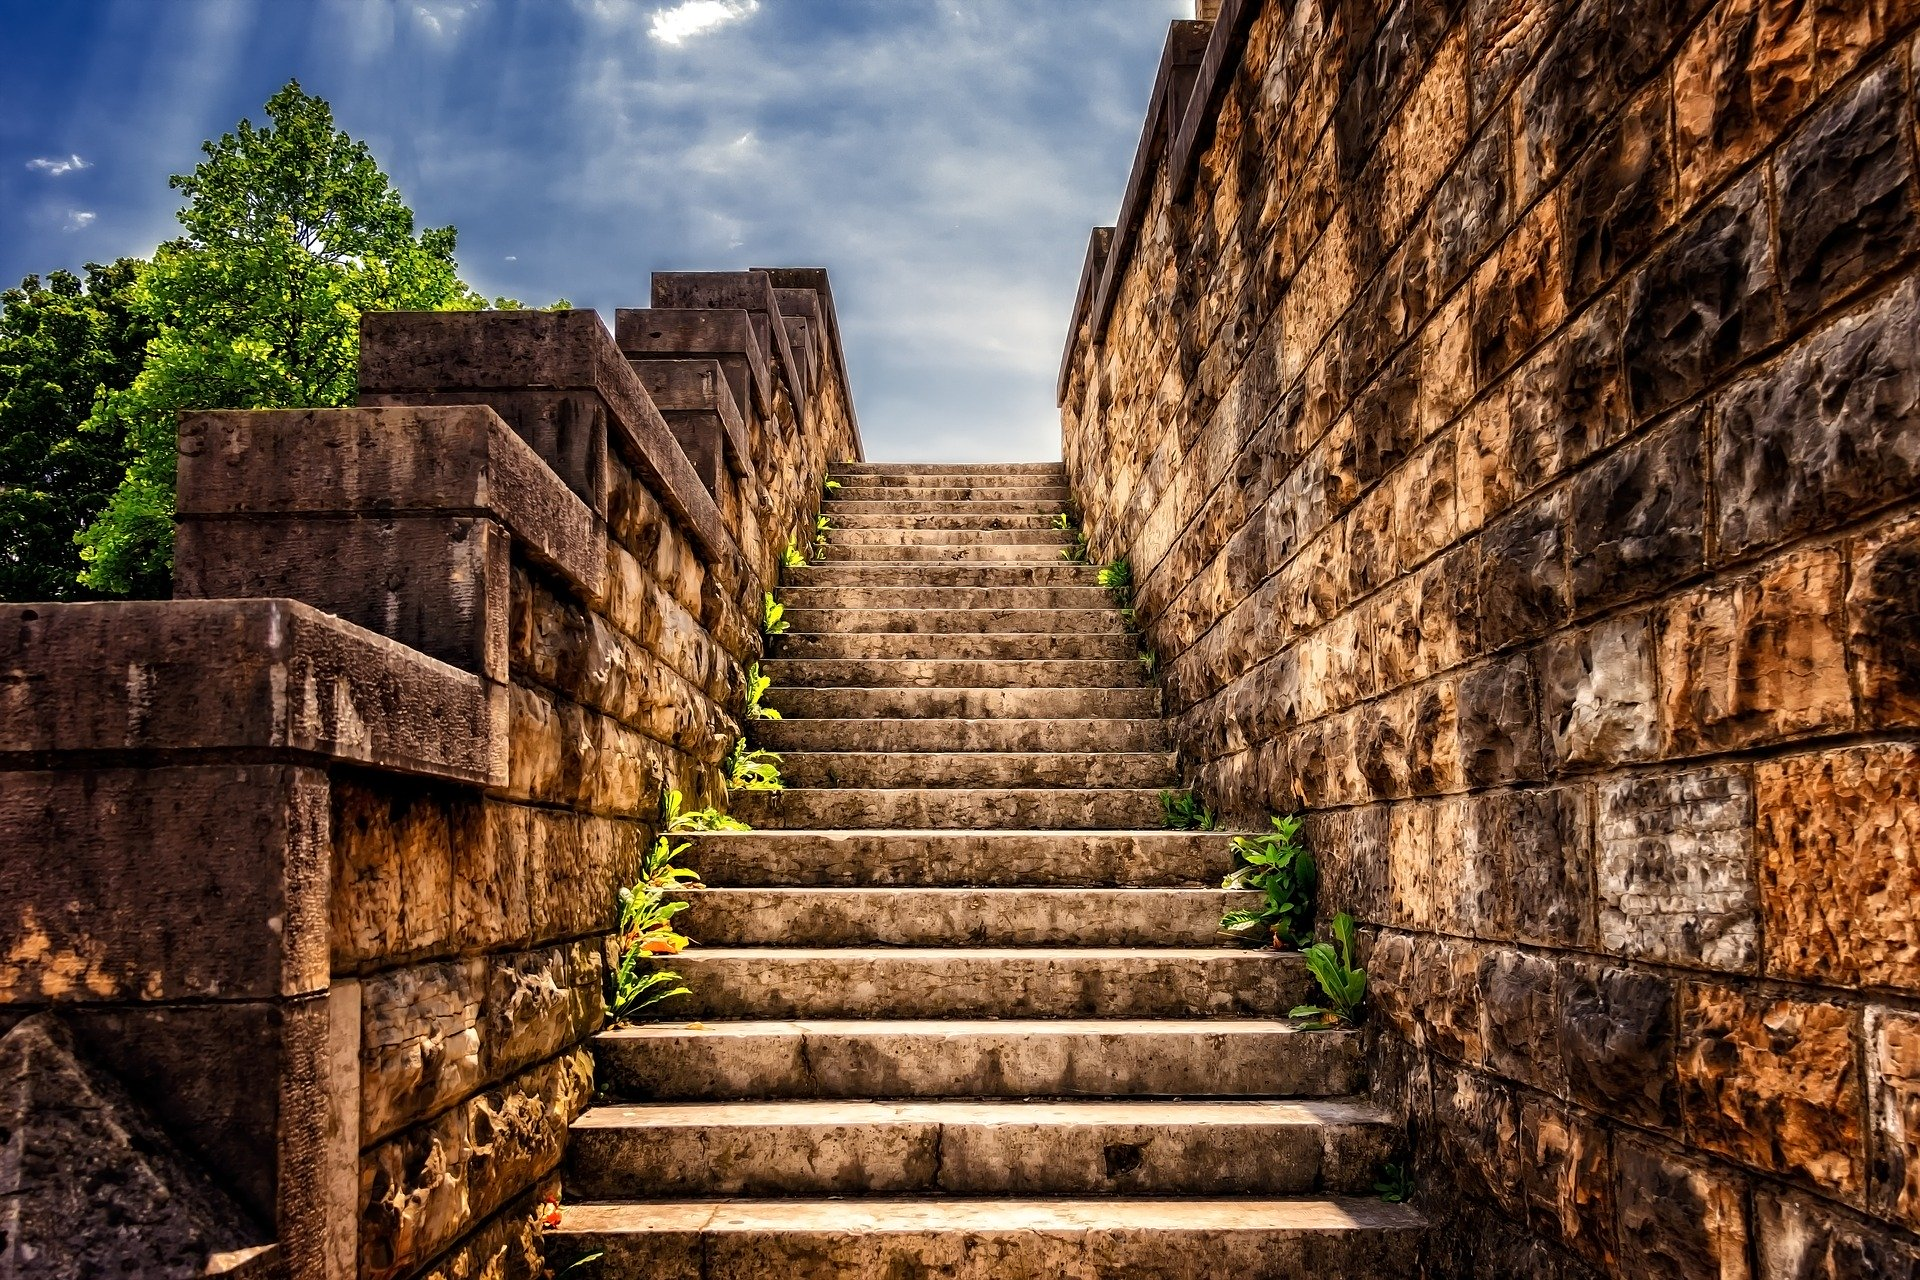 stairs-3614468_1920